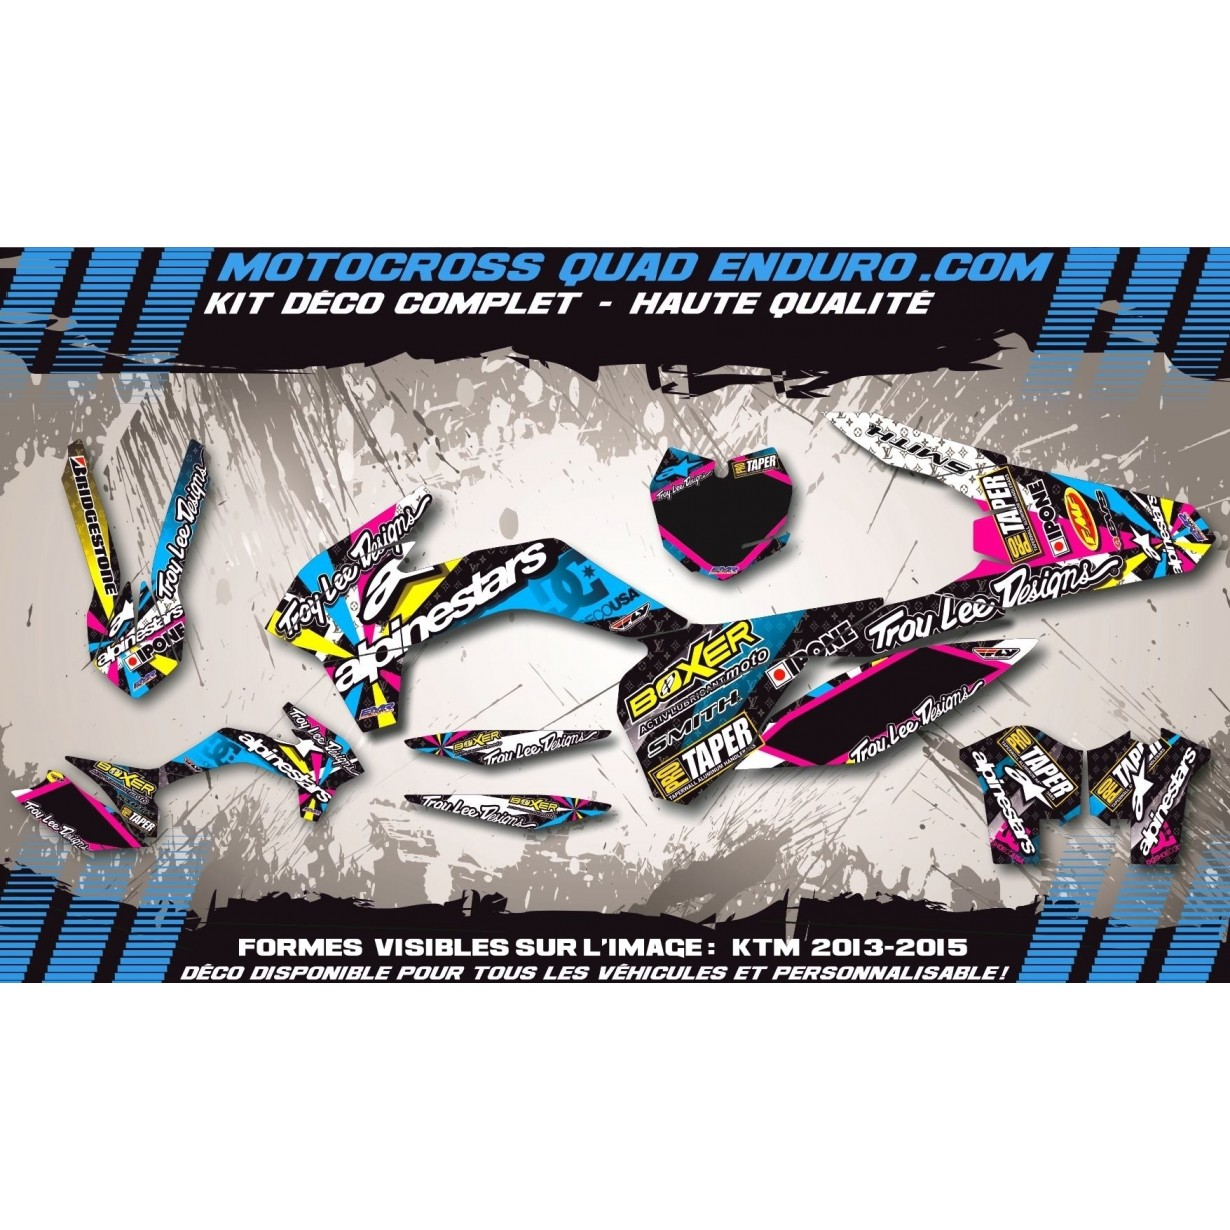 KIT DÉCO Perso 450 CRF 05-08 ALPINESTAR MA4A